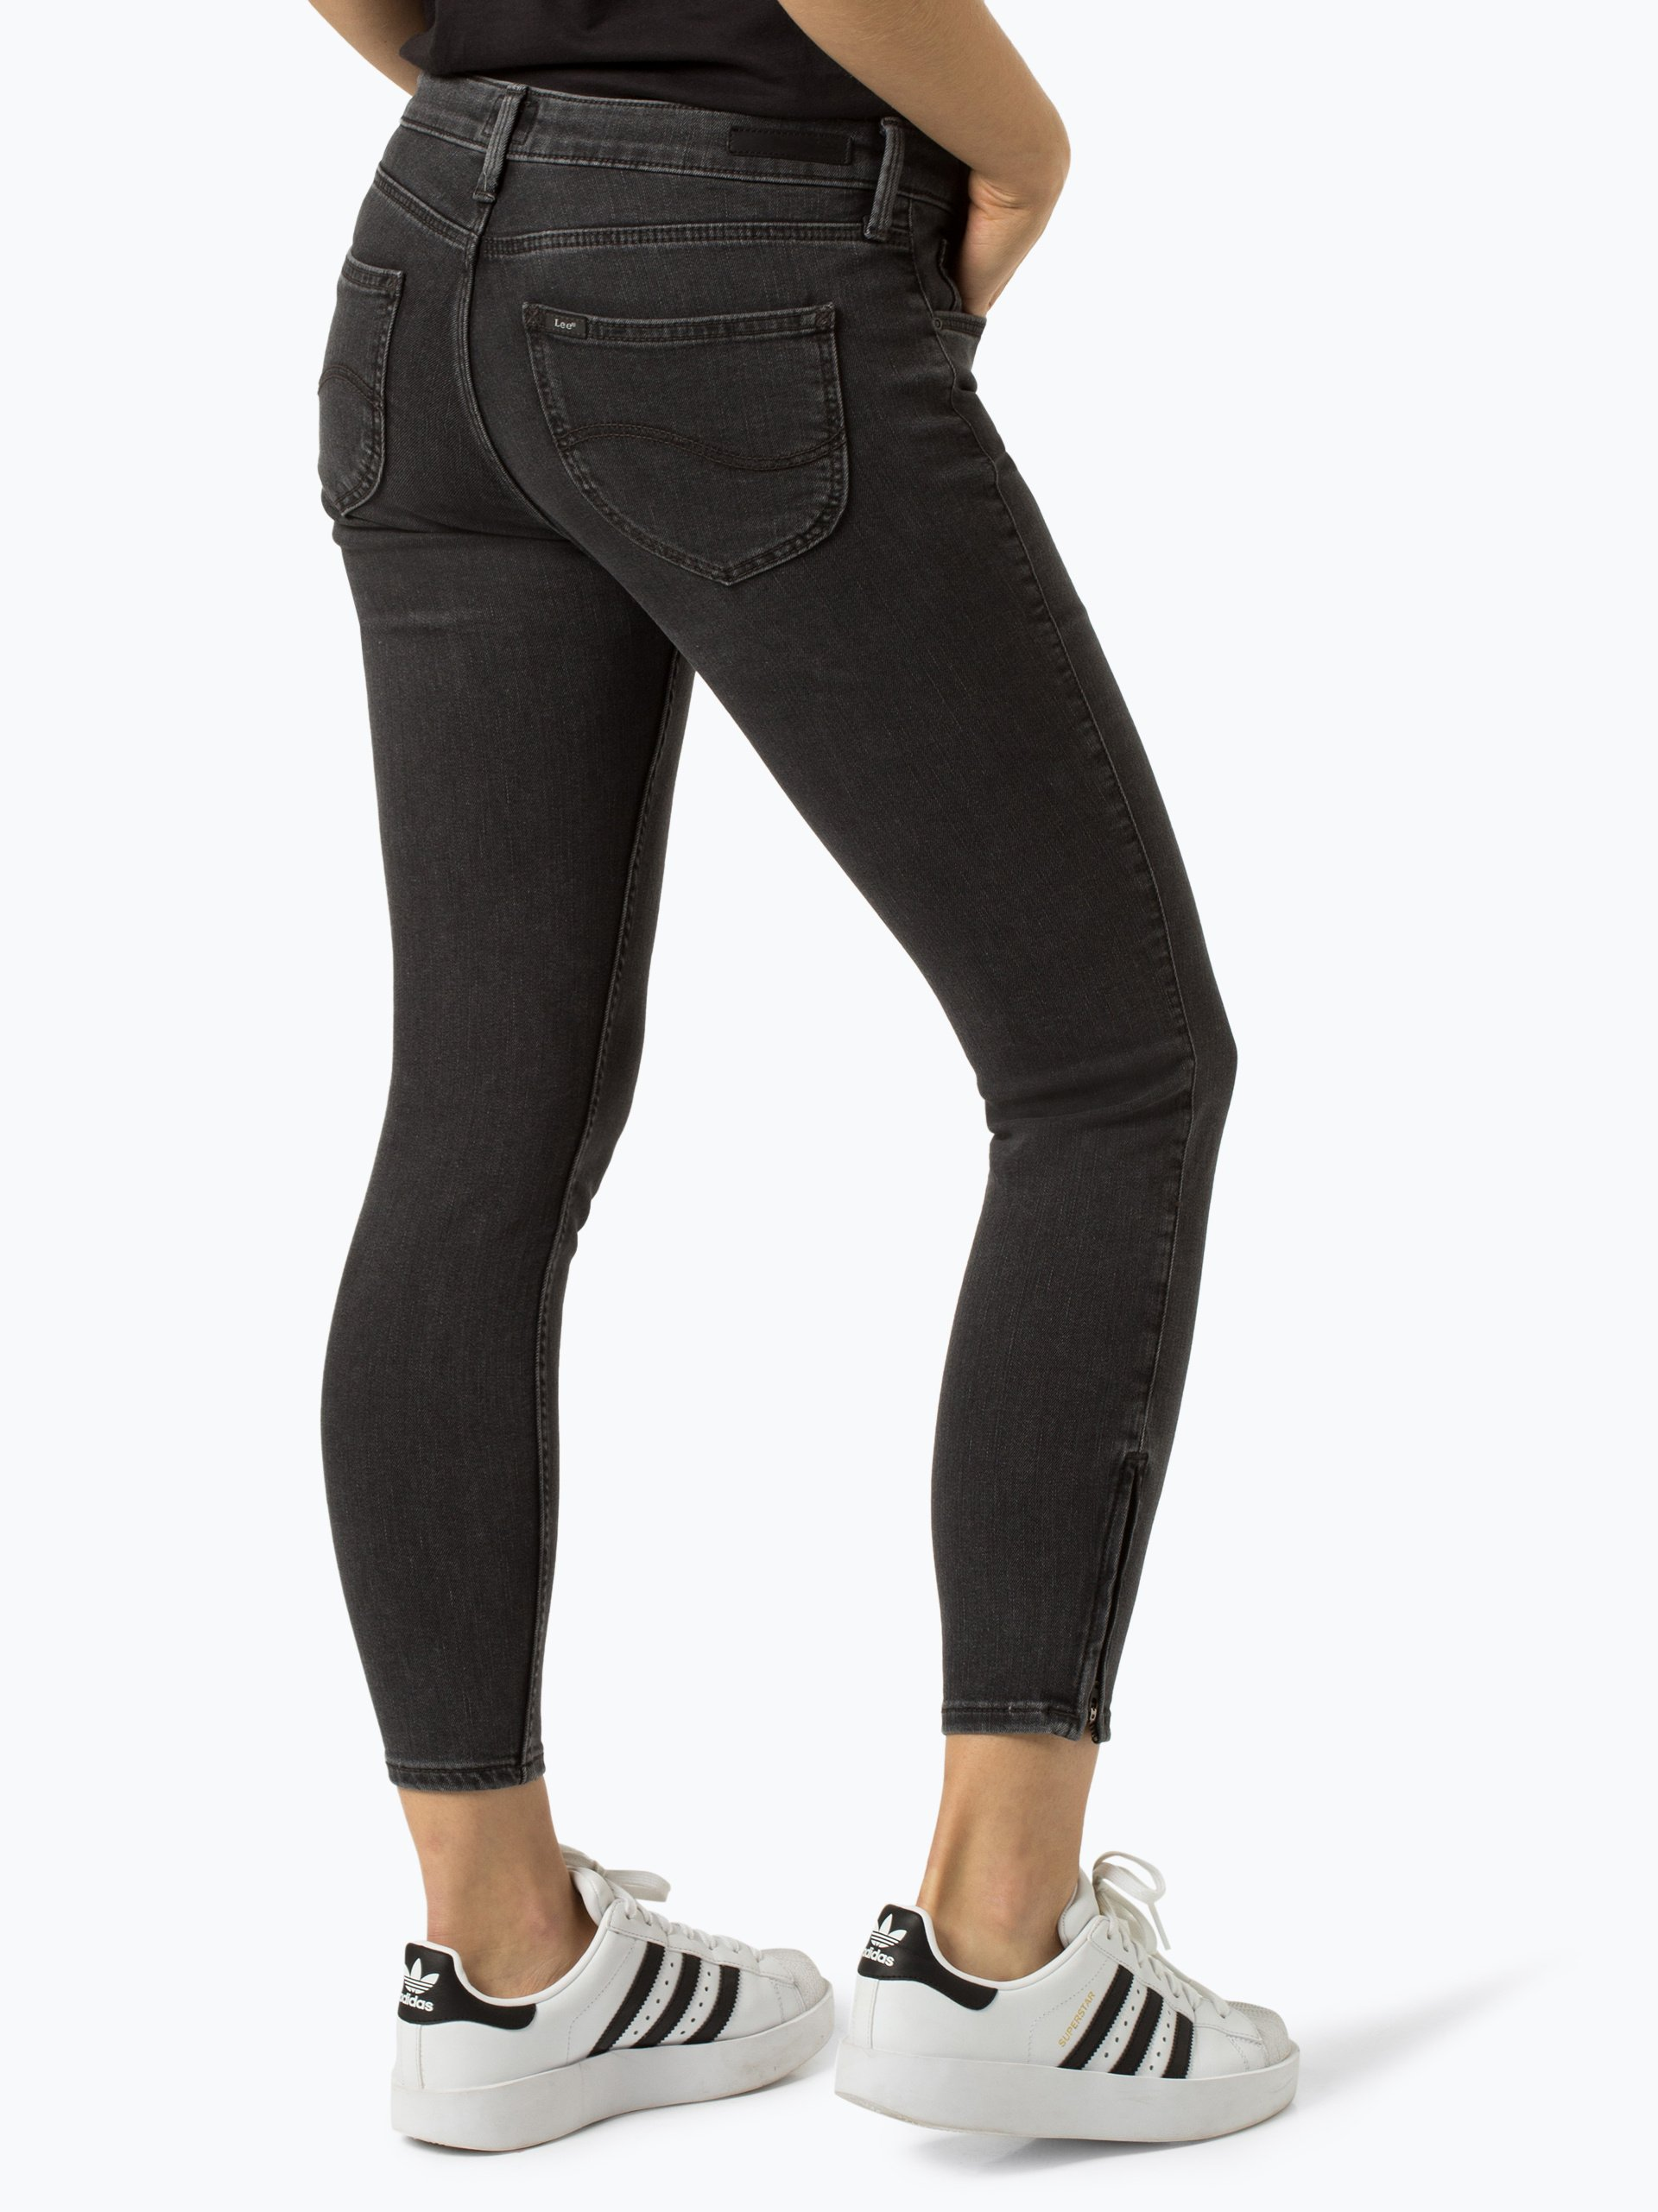 Lee Damen Jeans - Scarlett Cropped